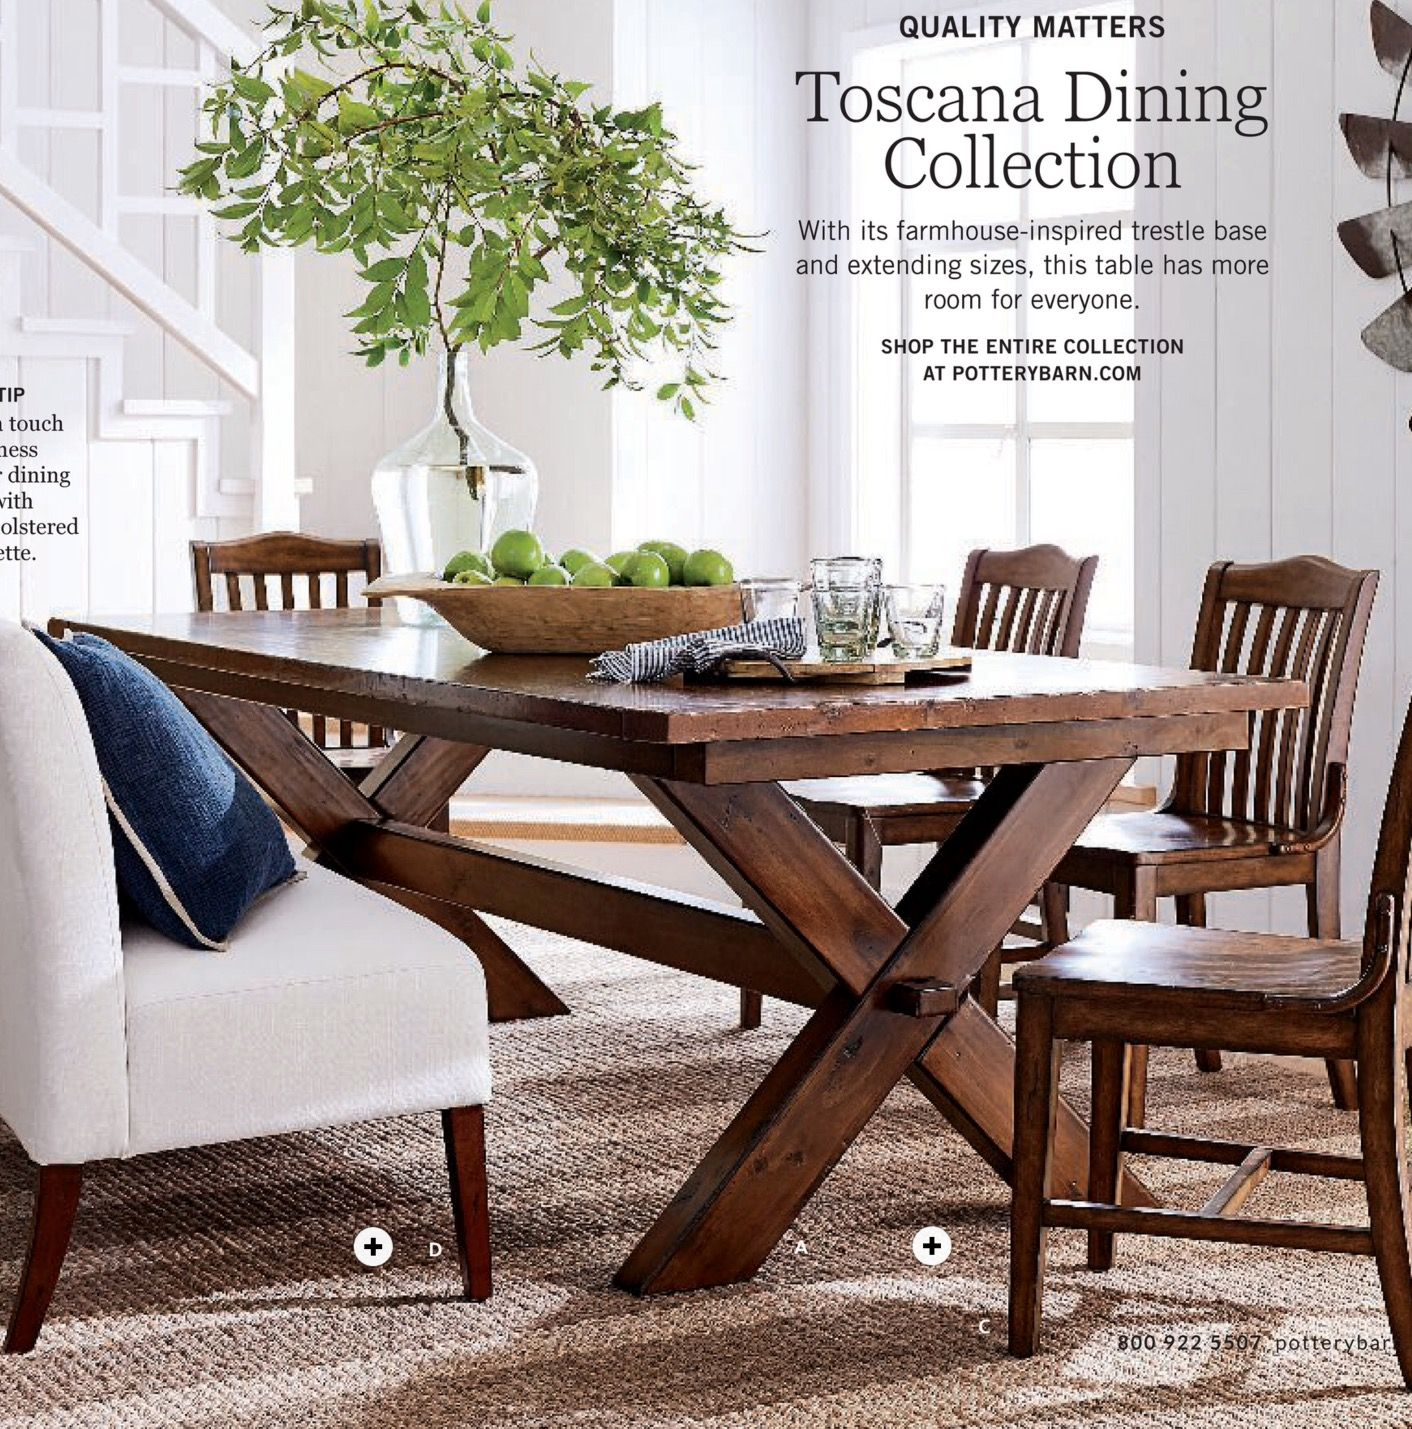 Toscano dining table stella dining chairs barrett glass globe chandelier in performance everyday linen ivory highland farmhouse banquette